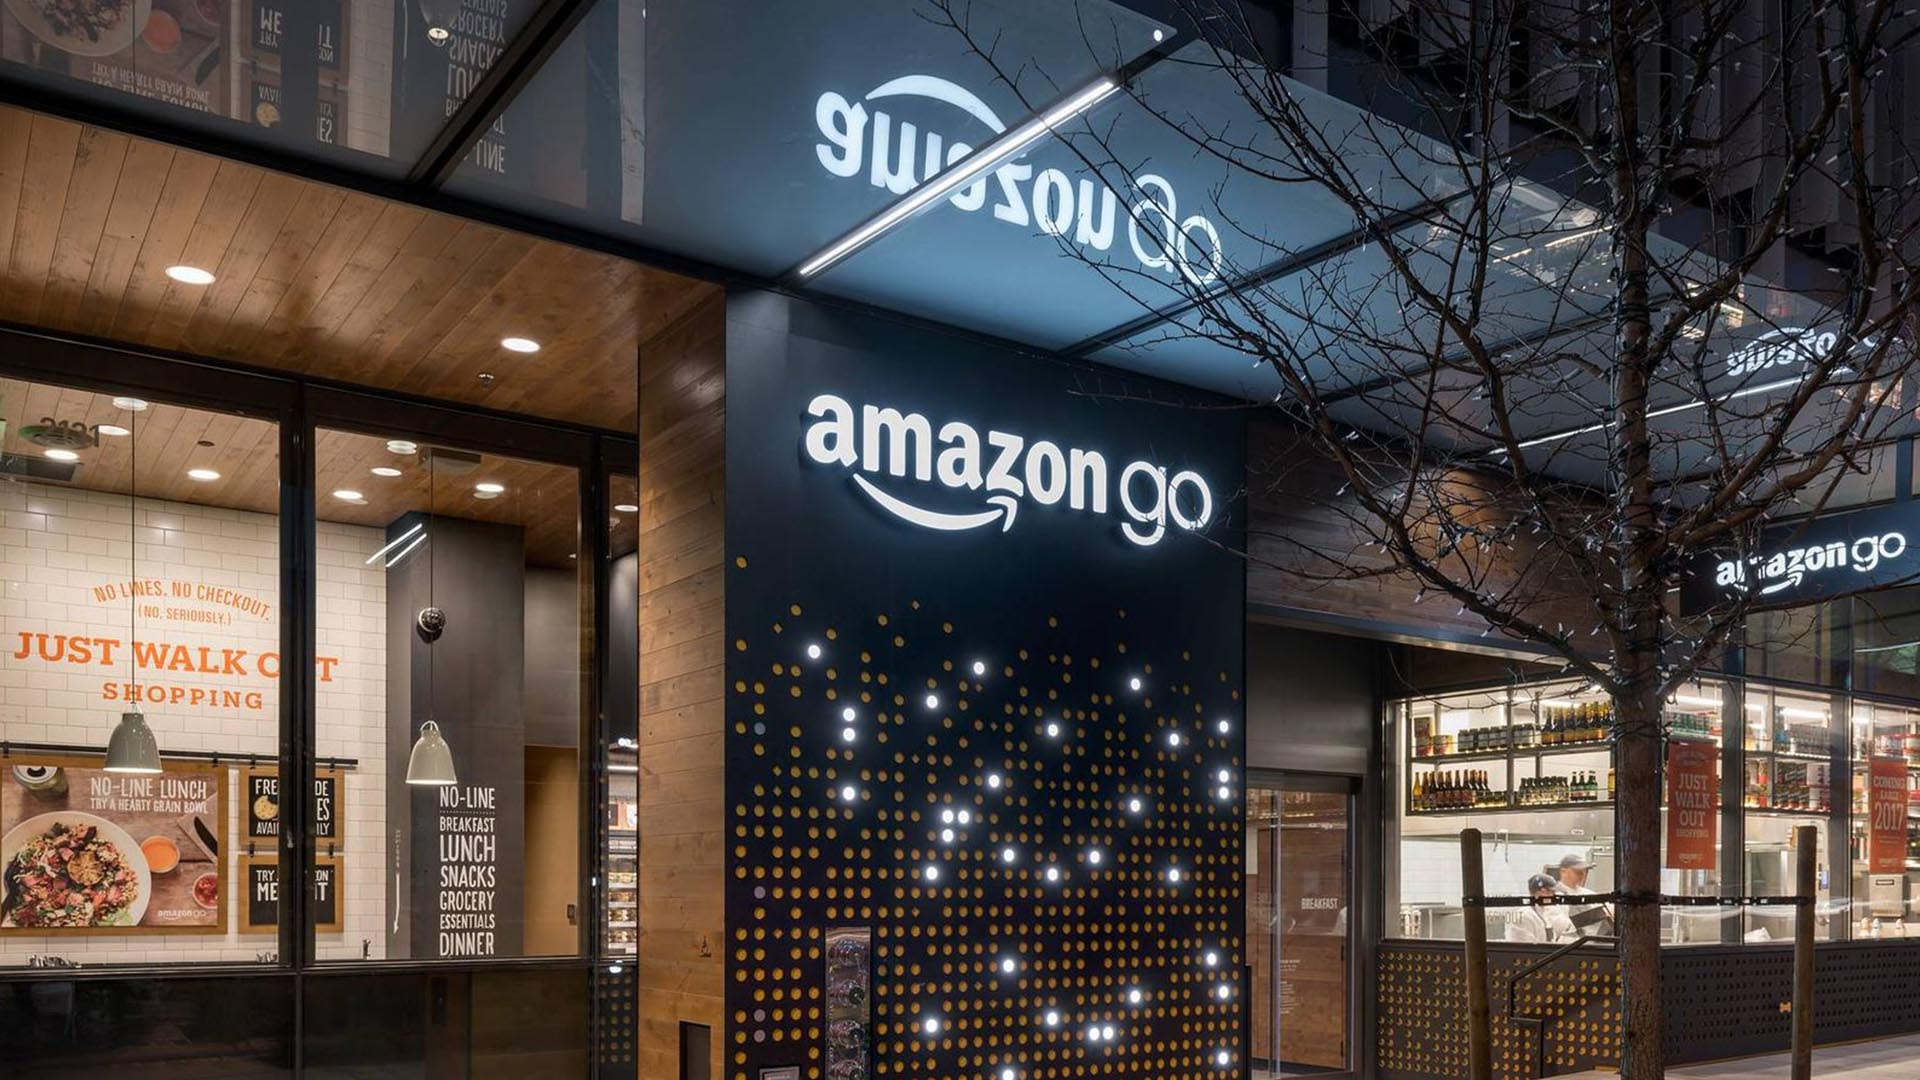 Amazon go personality insights